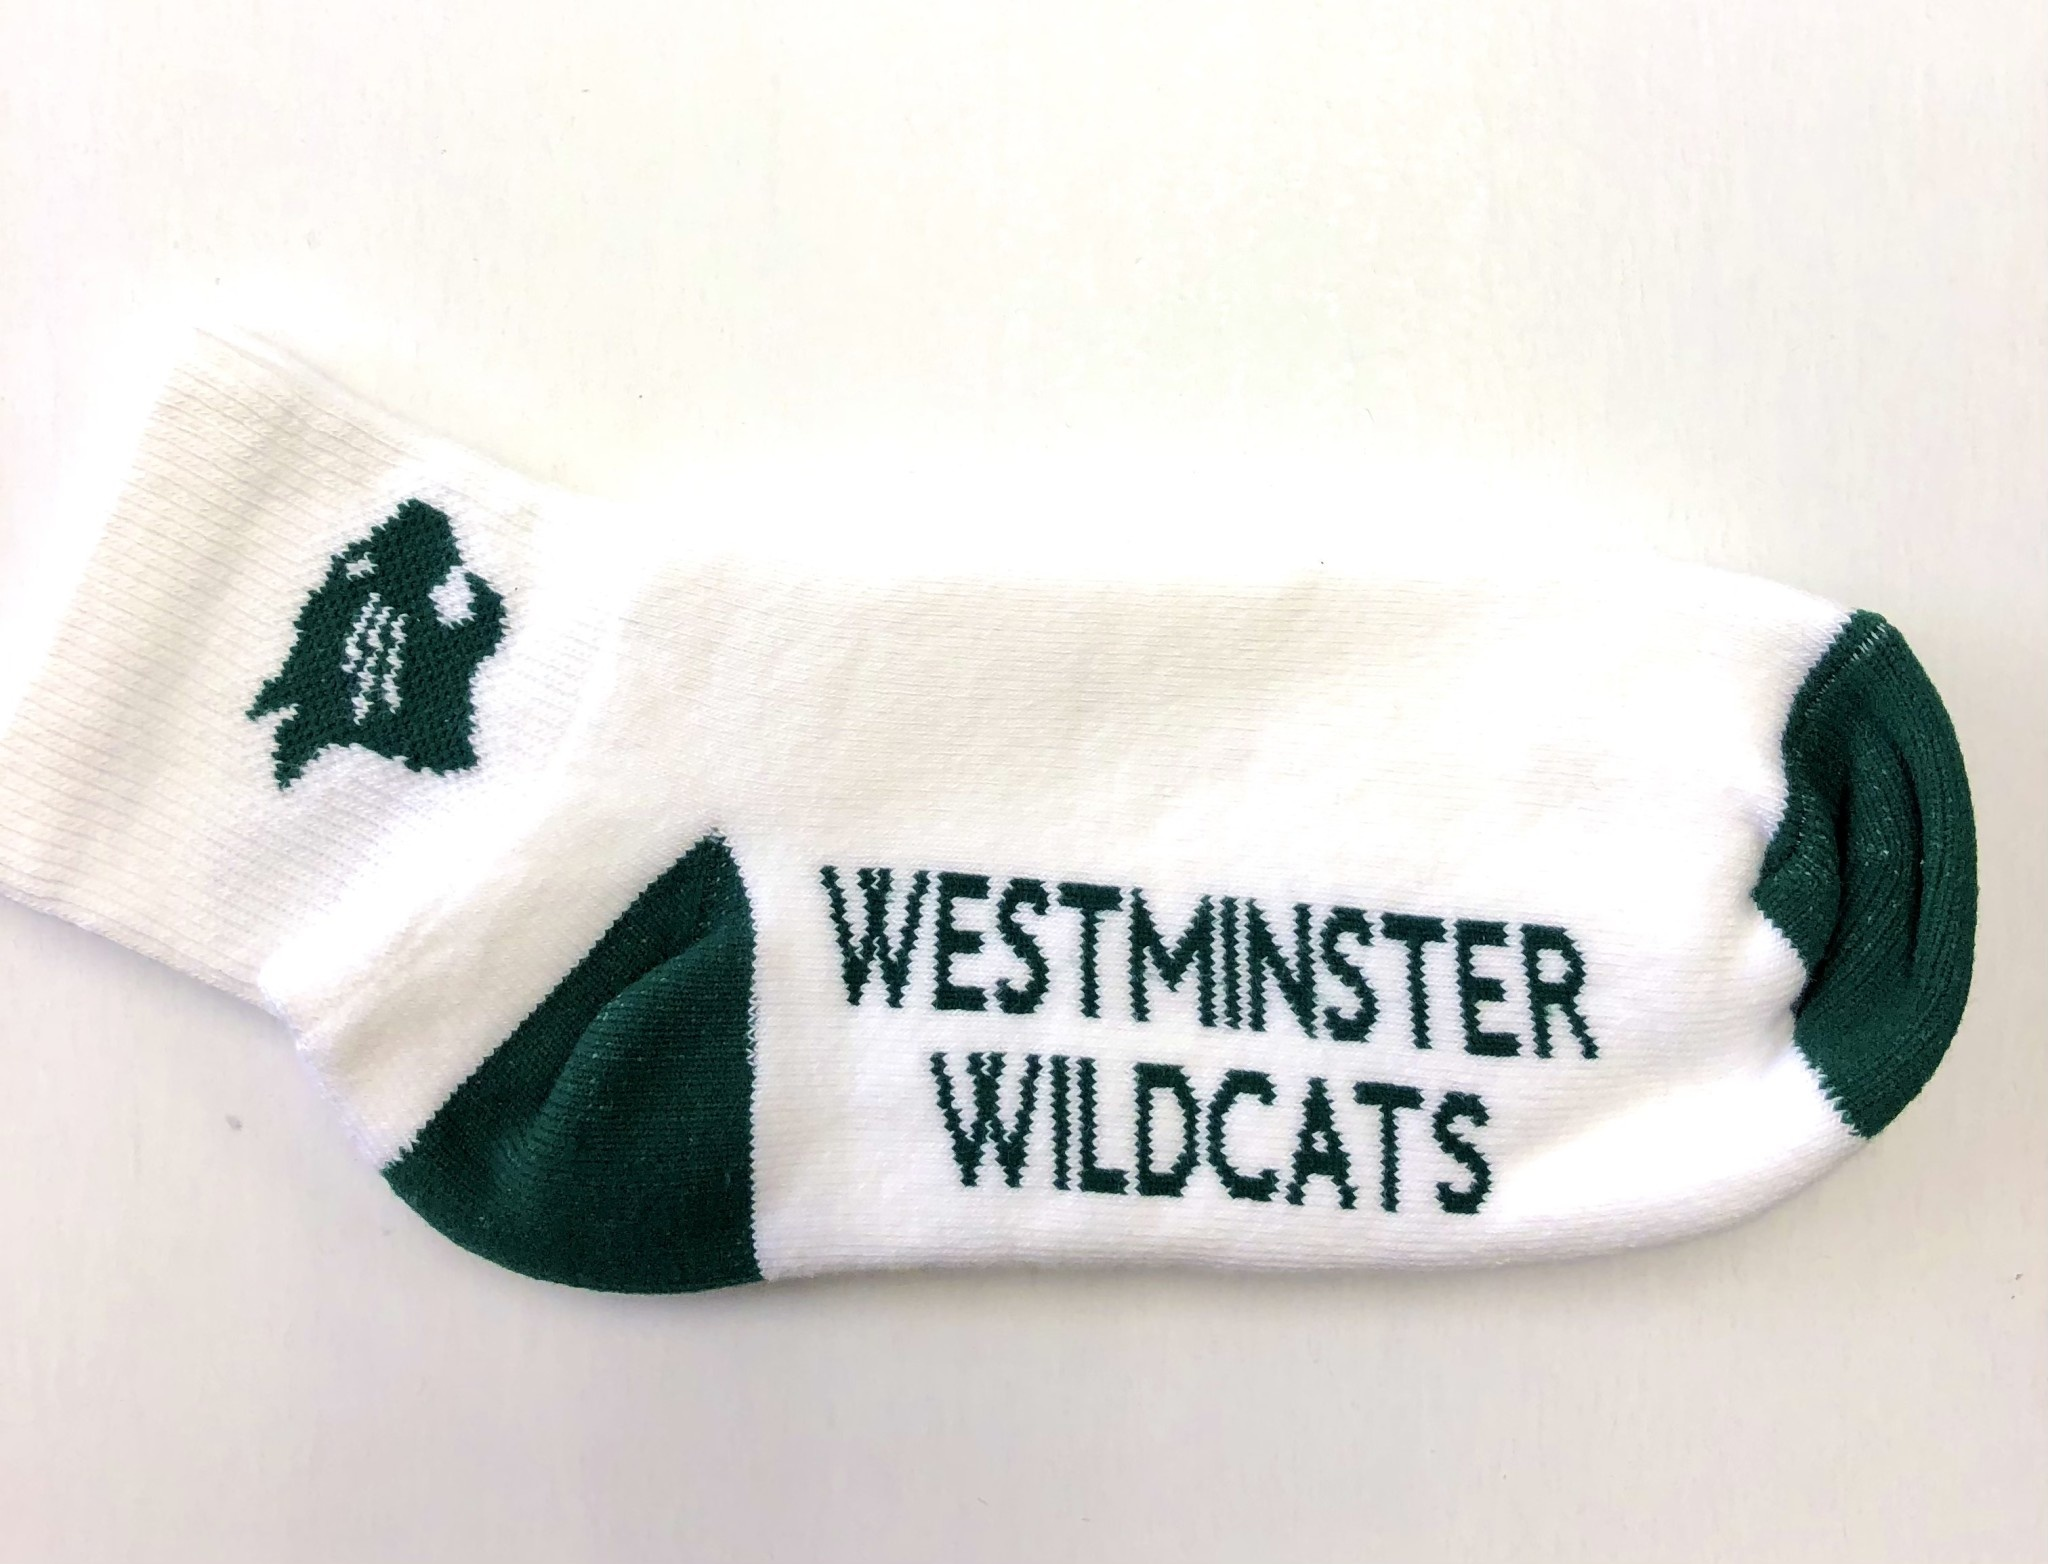 Socks: Crew Westminster